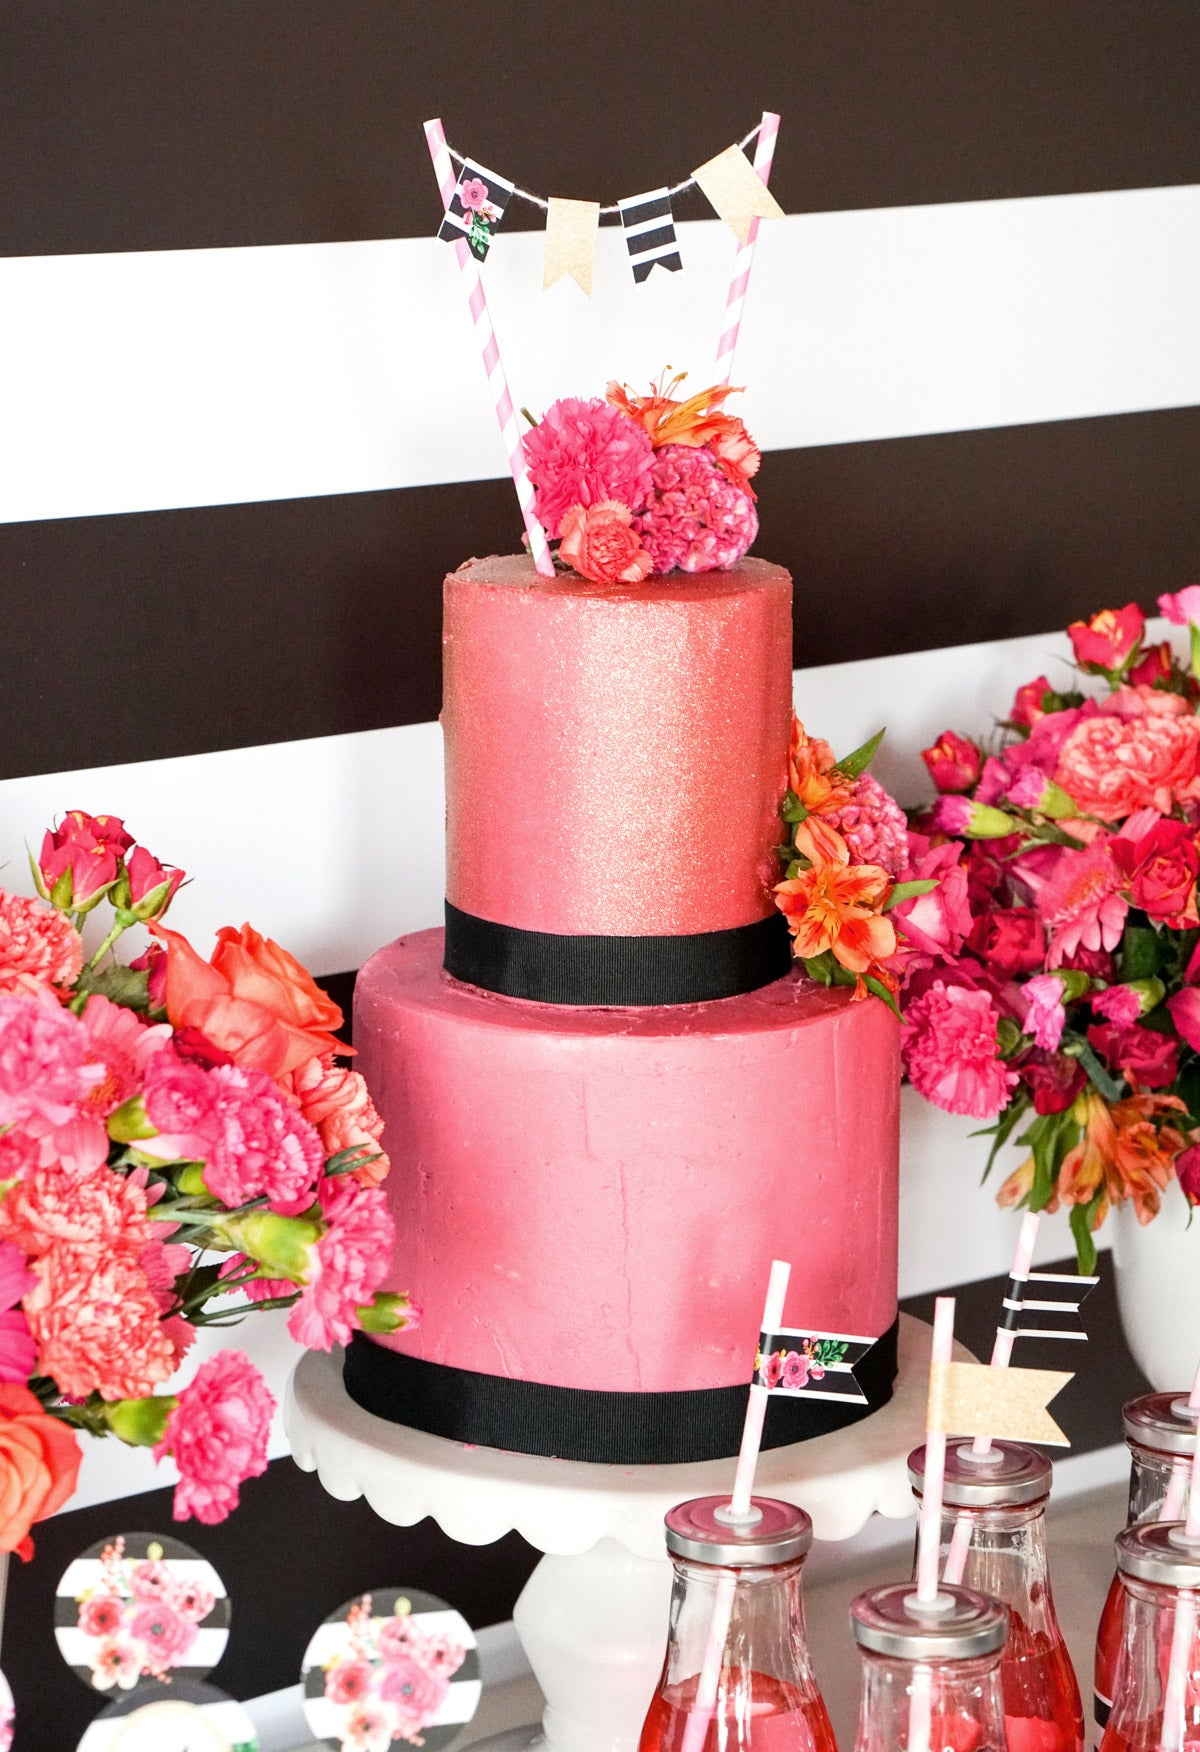 Pink Tiered Cake With Black Ribbon